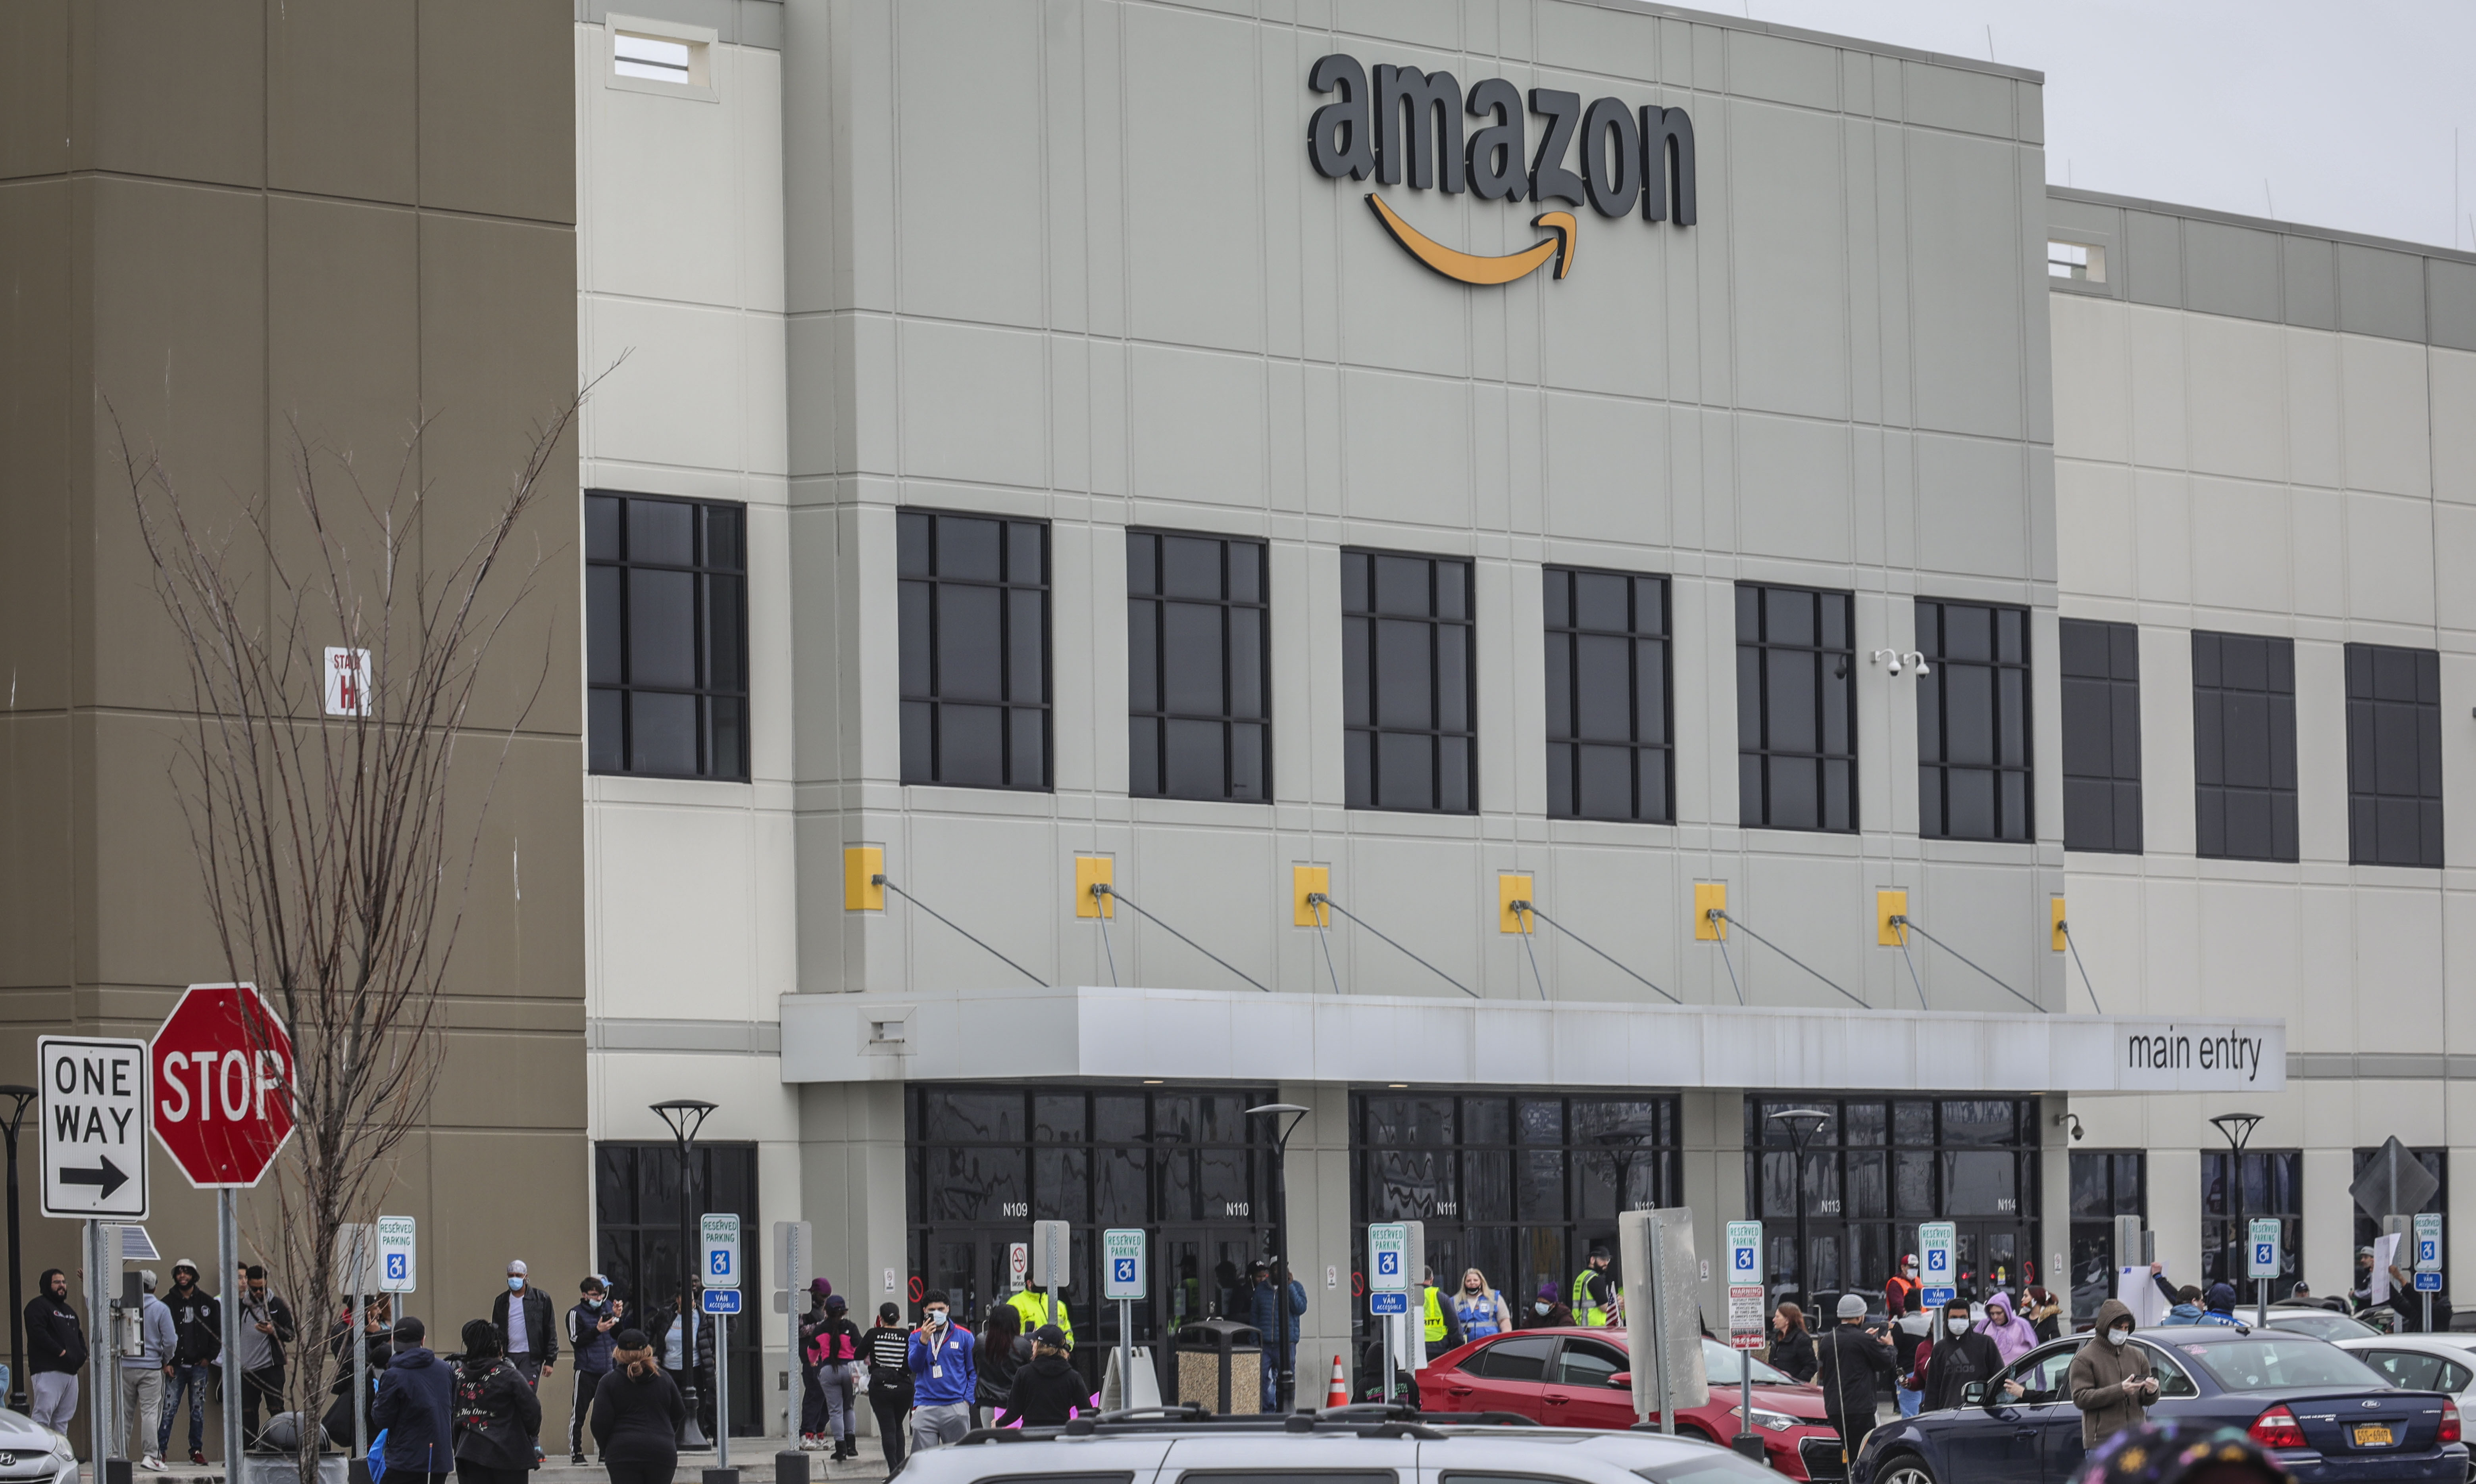 Workers at Amazon's fulfillment center in Staten Island, N.Y., gather outside to protest work conditions in the company's warehouse, in New York. Workers say Amazon is not doing enough to to keep workers safe from the spread of COVID-19 and coronavirusVirus Outbreak-Amazon, New York, United States - 30 Mar 2020